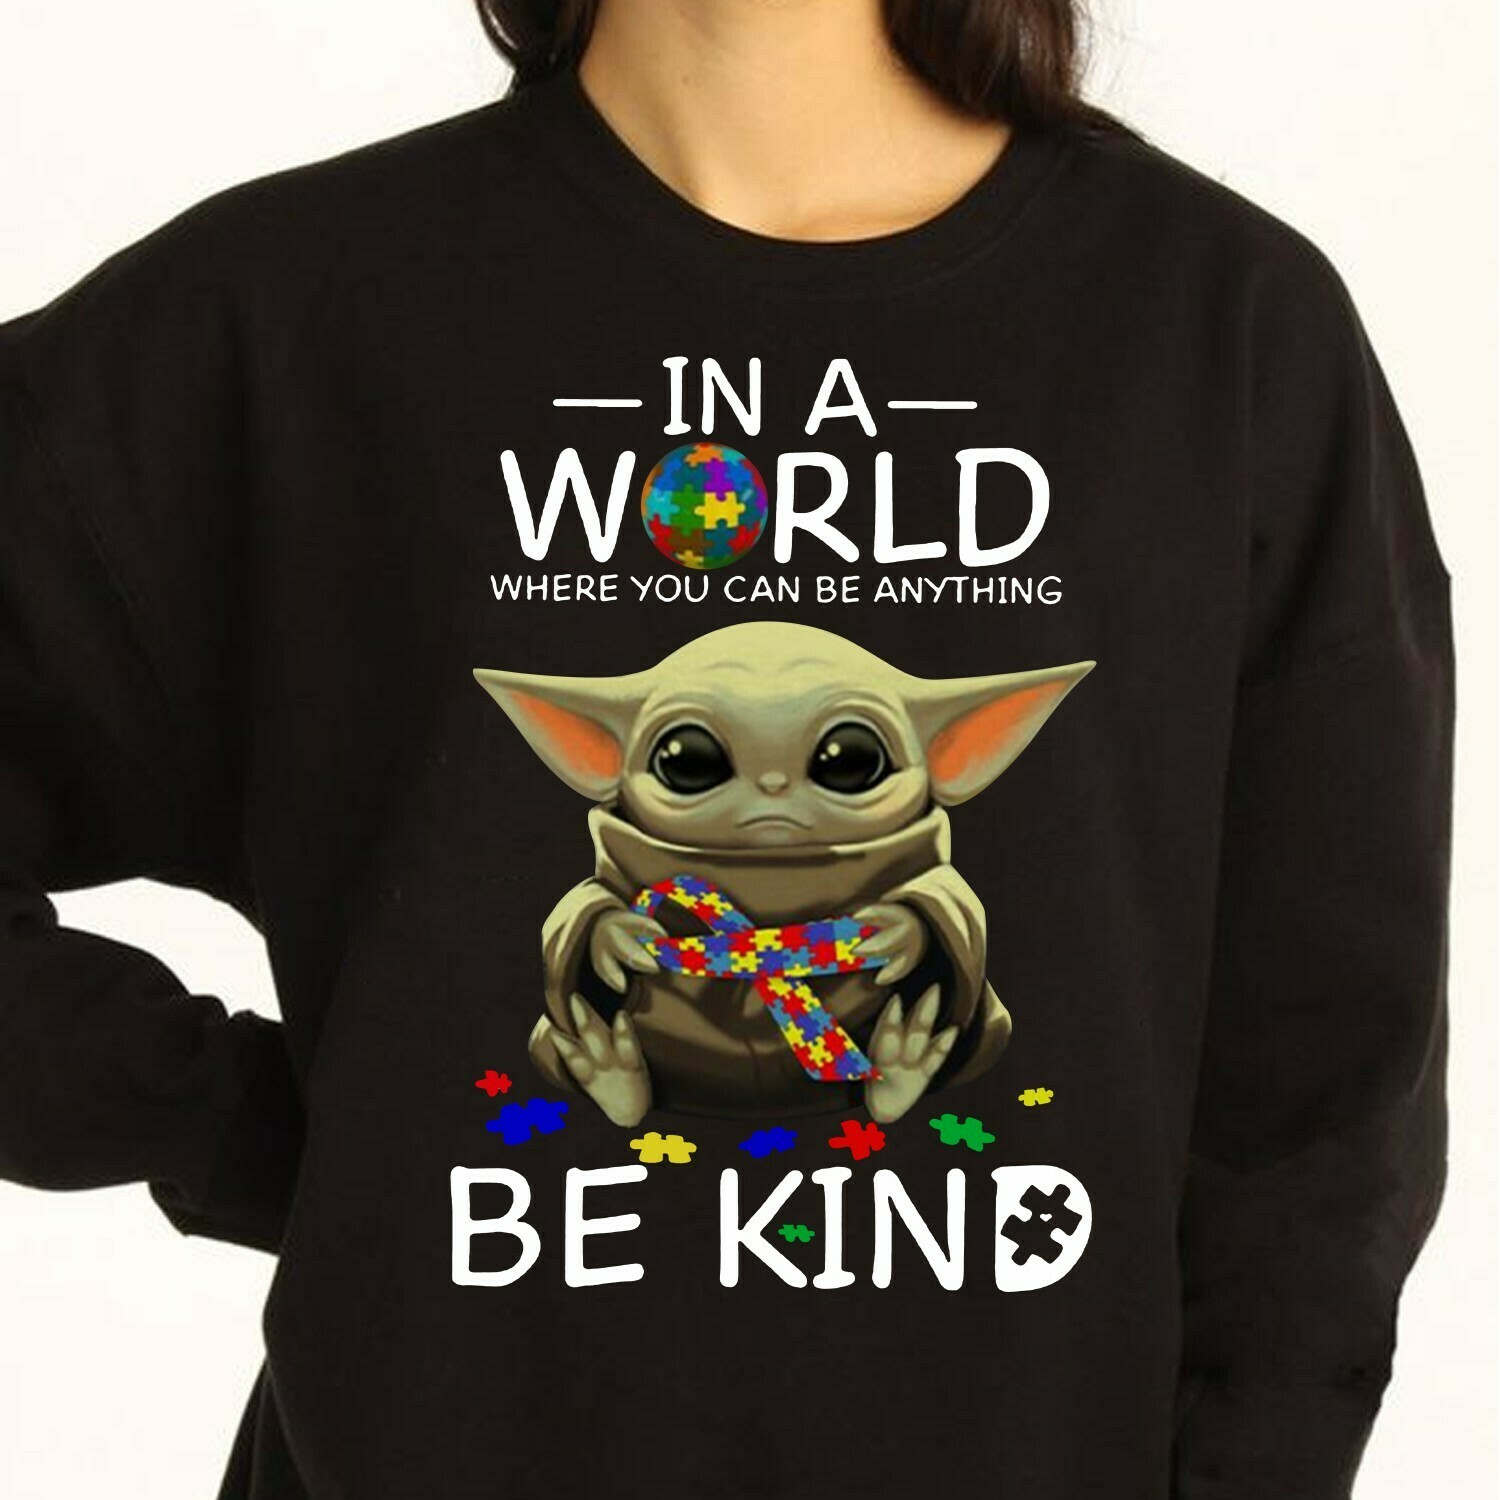 Star Wars Yoda And Baby Yoda In A World Where You Can Be Anything Be Kind Baby Yoda hug Cancer Awareness hope for a cure T-Shirt Long Sleeve Sweatshirt Hoodie Jolly Family Gifts